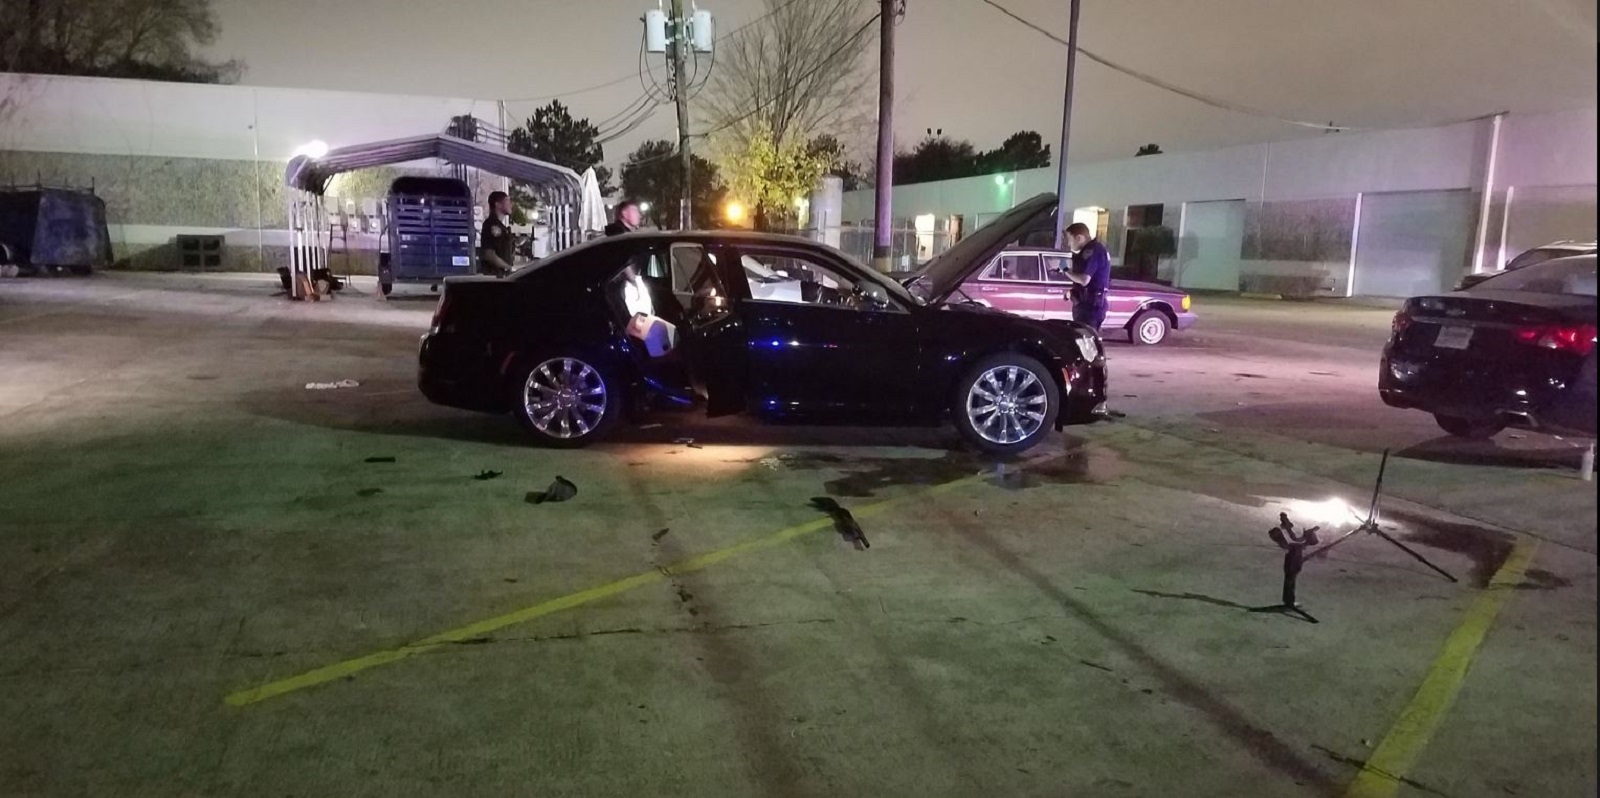 The scene of a shooting in Texas on Dec. 27, 2019. (Credit: Harris County Sheriff's Office via CNN)